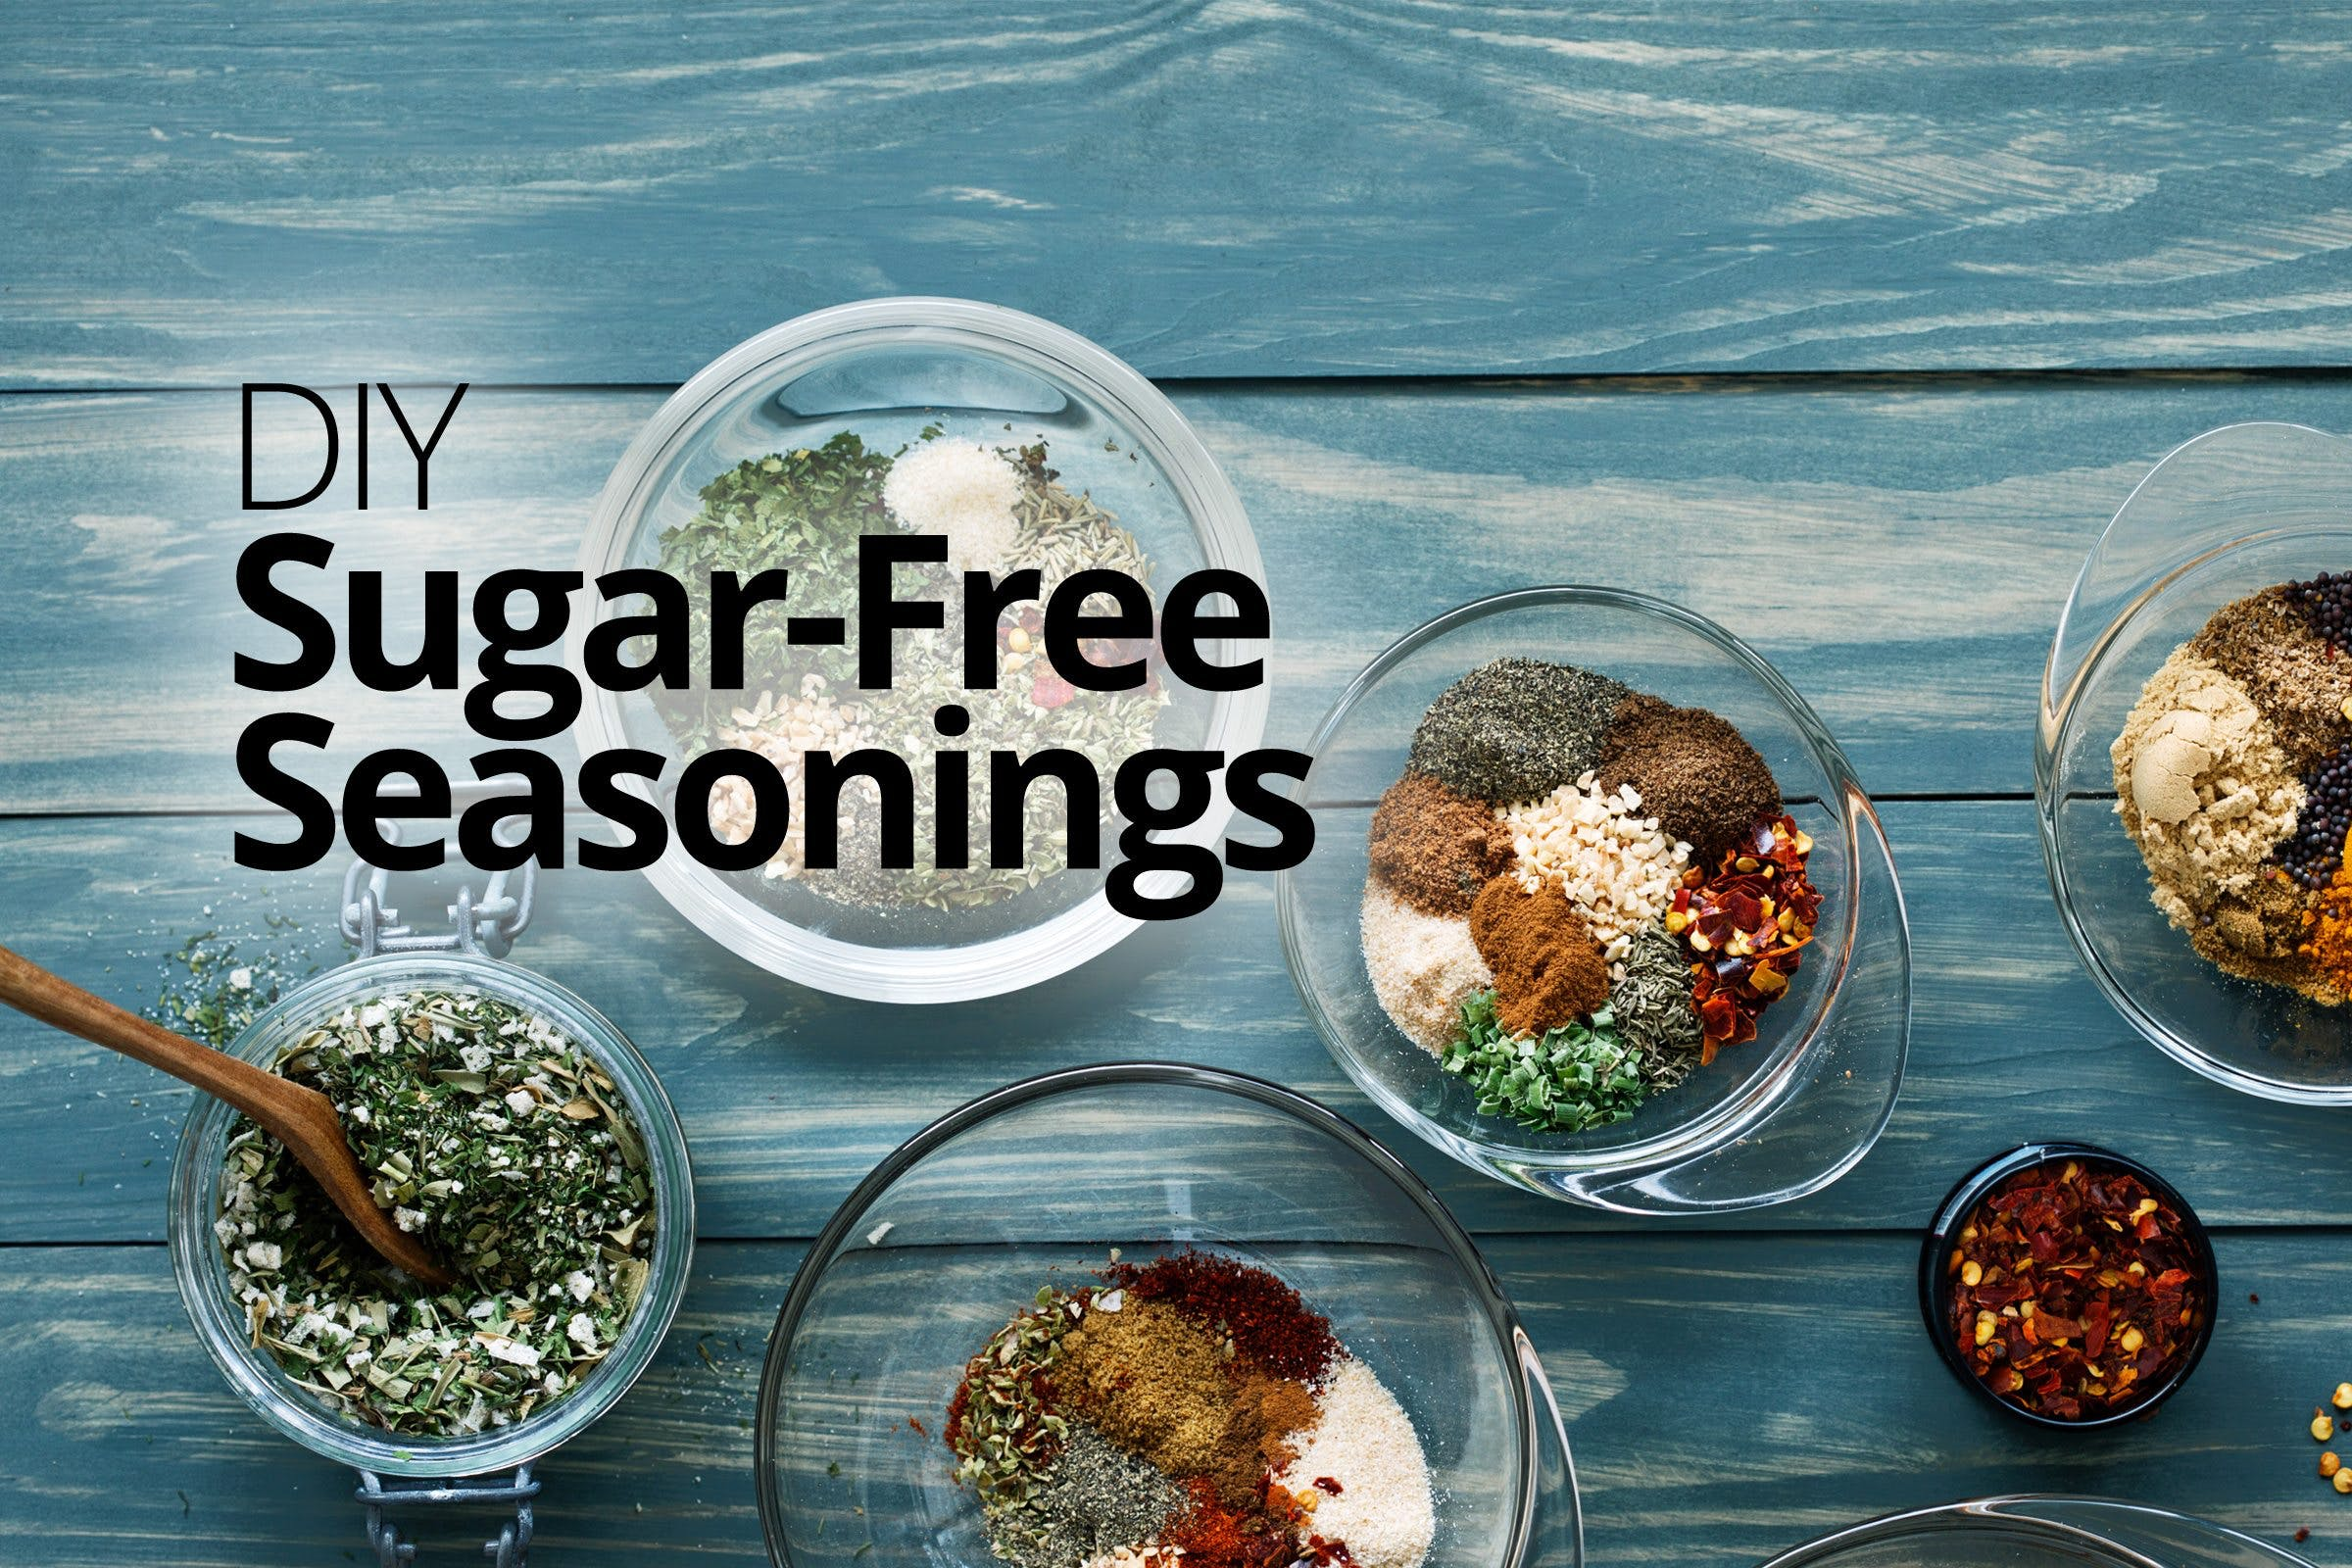 DIY sugar-free seasonings